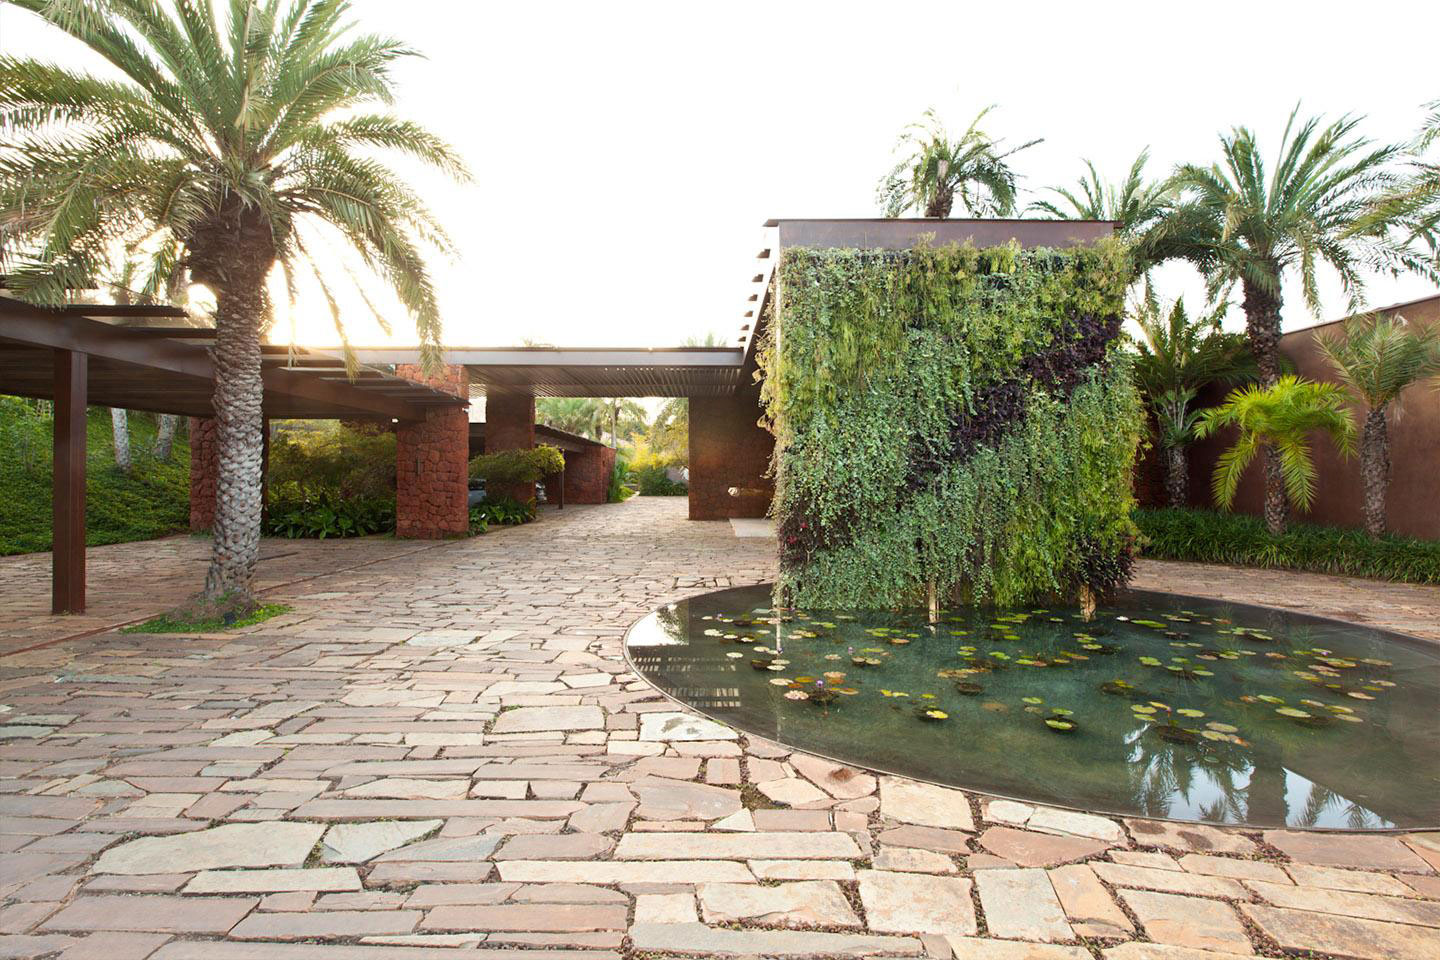 Water Feature, Driveway, House in Nova Lima, Brazil